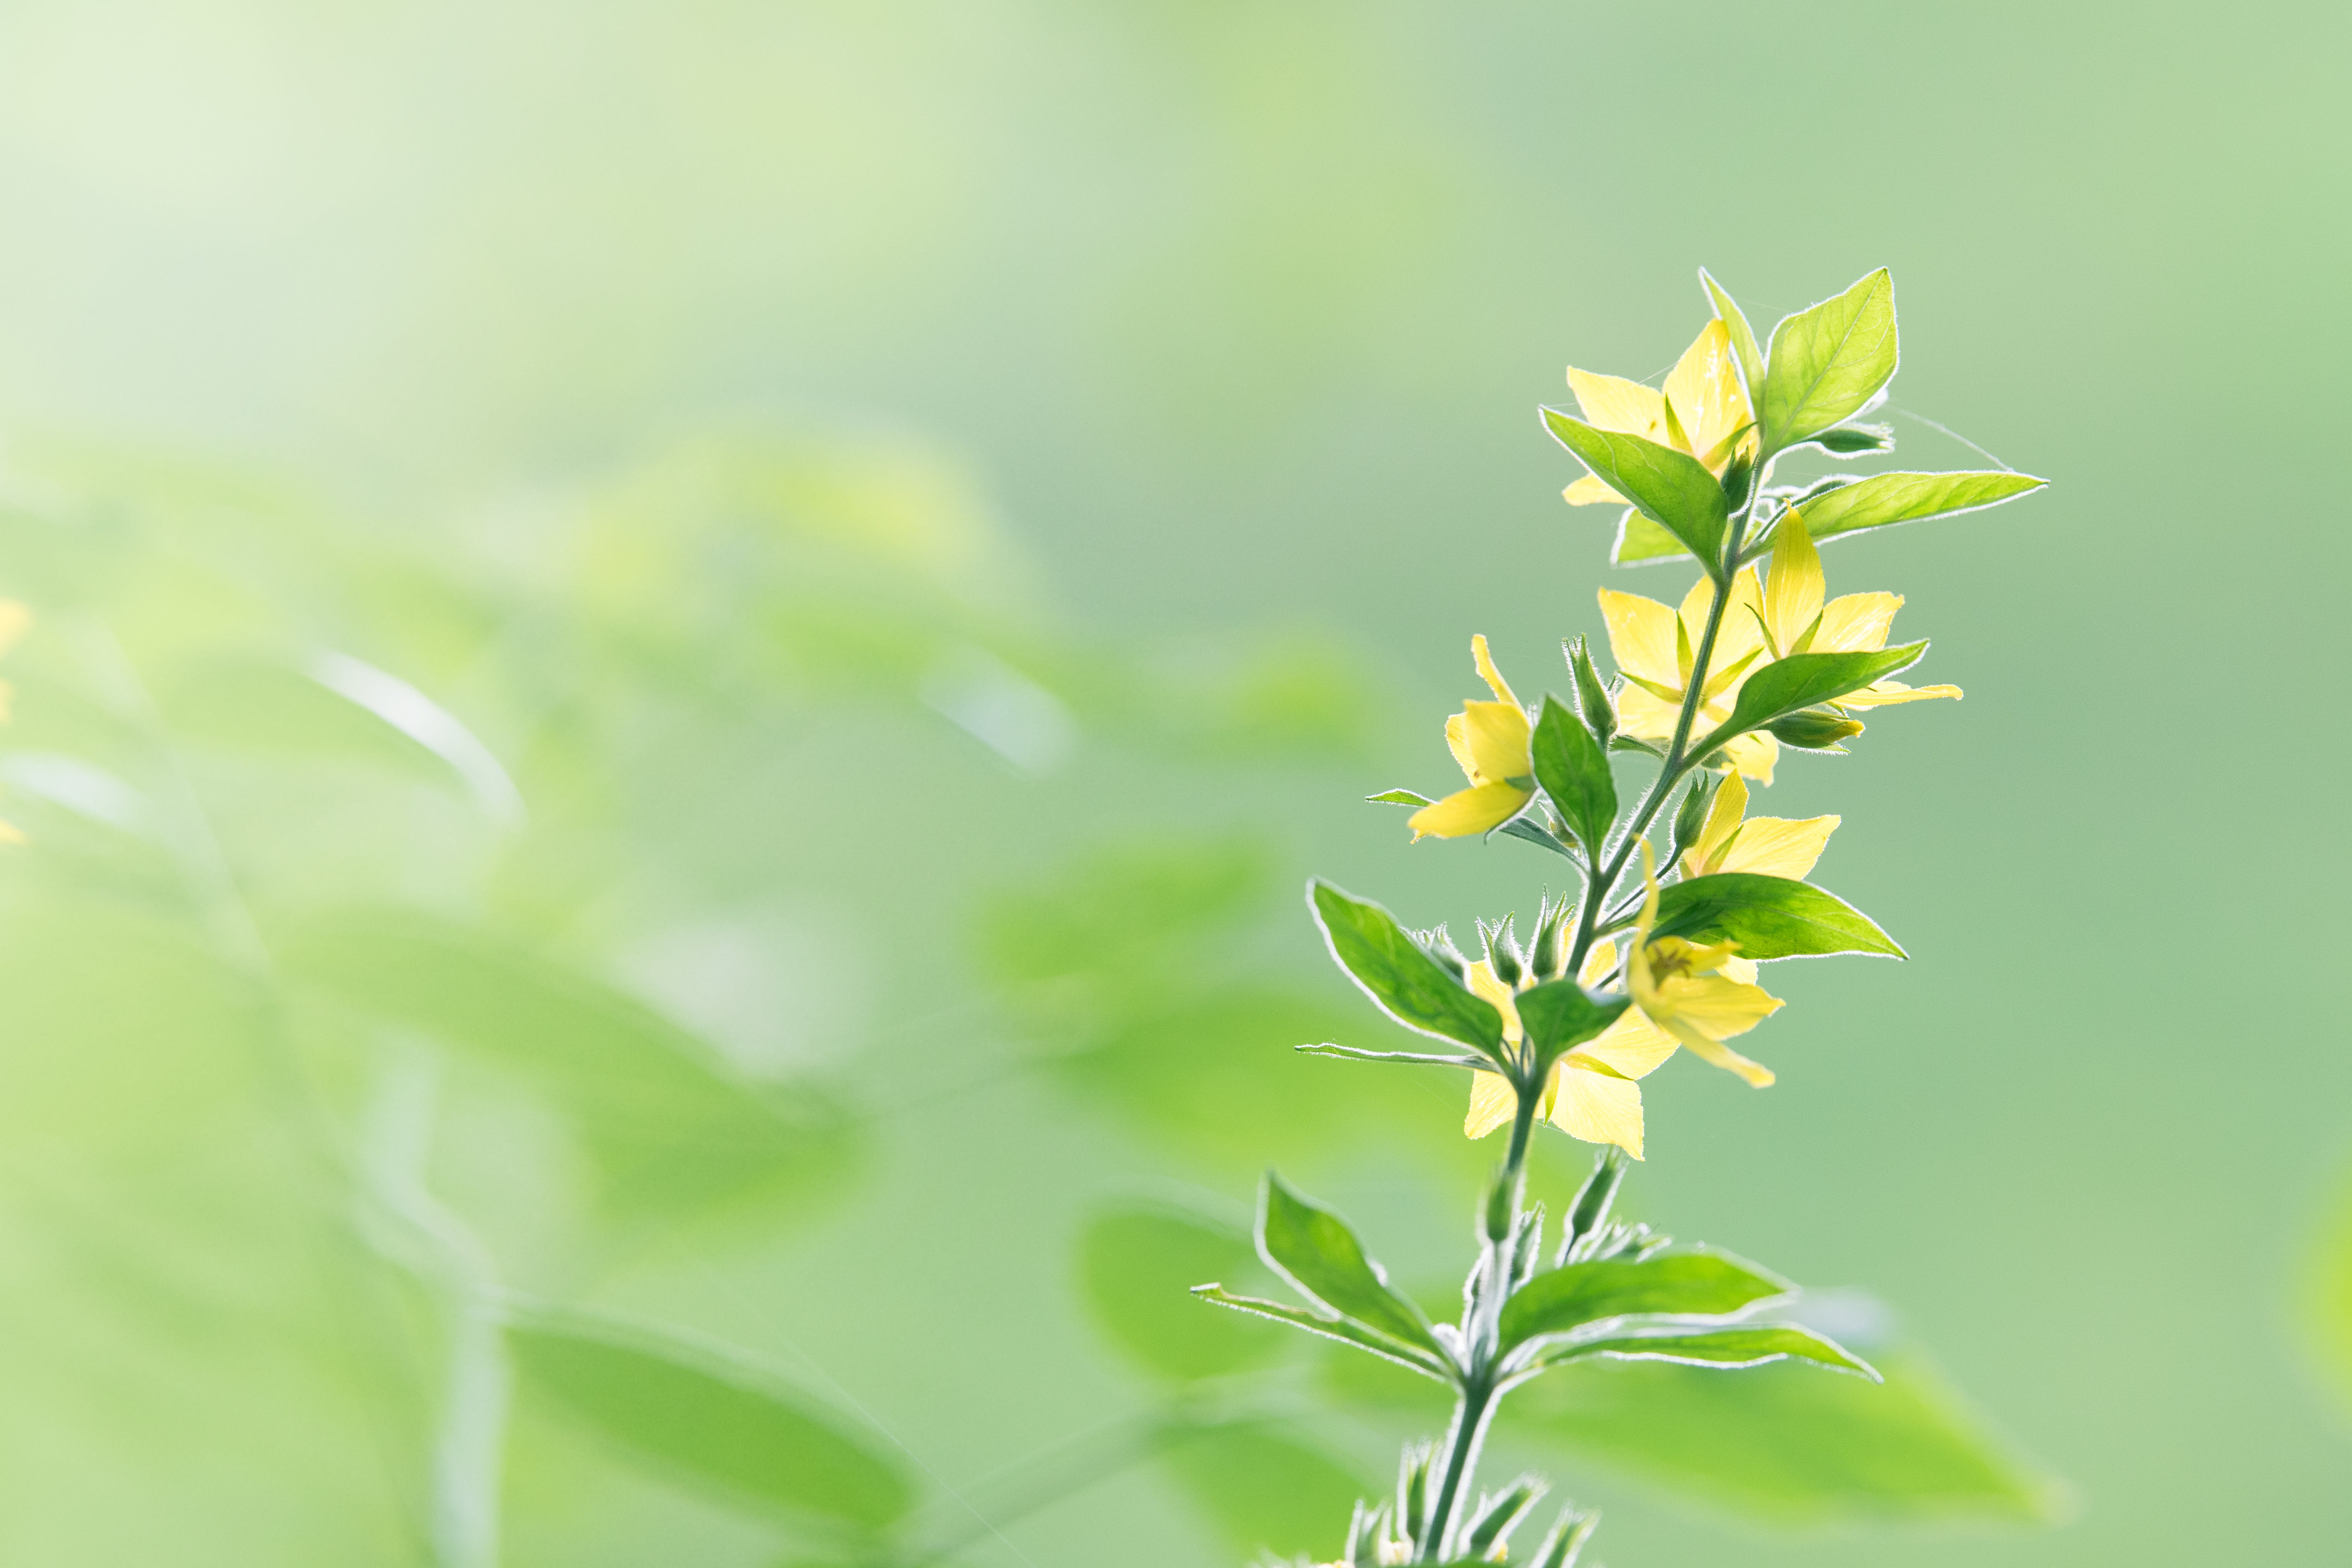 Selective Focus Photo of Yellow Flowers in Bloom